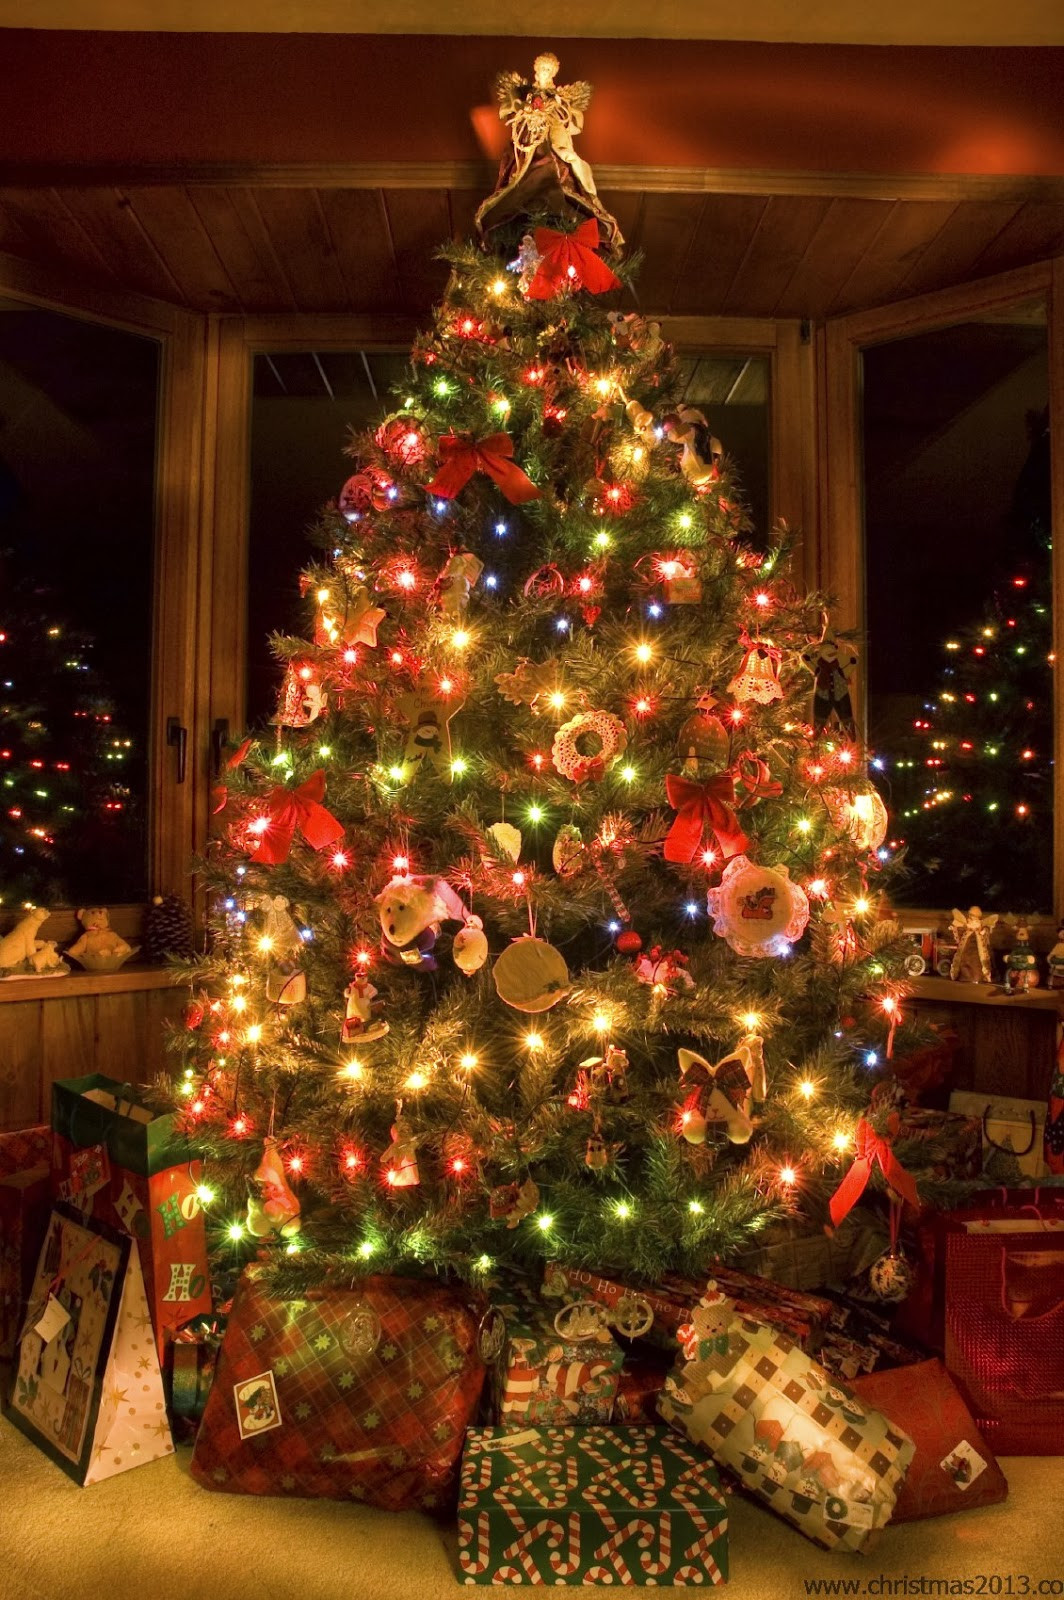 Best Of Christmas Tree Decorations & Ideas for 2013 Christmas Tree and Decorations Of Delightful 50 Pictures Christmas Tree and Decorations